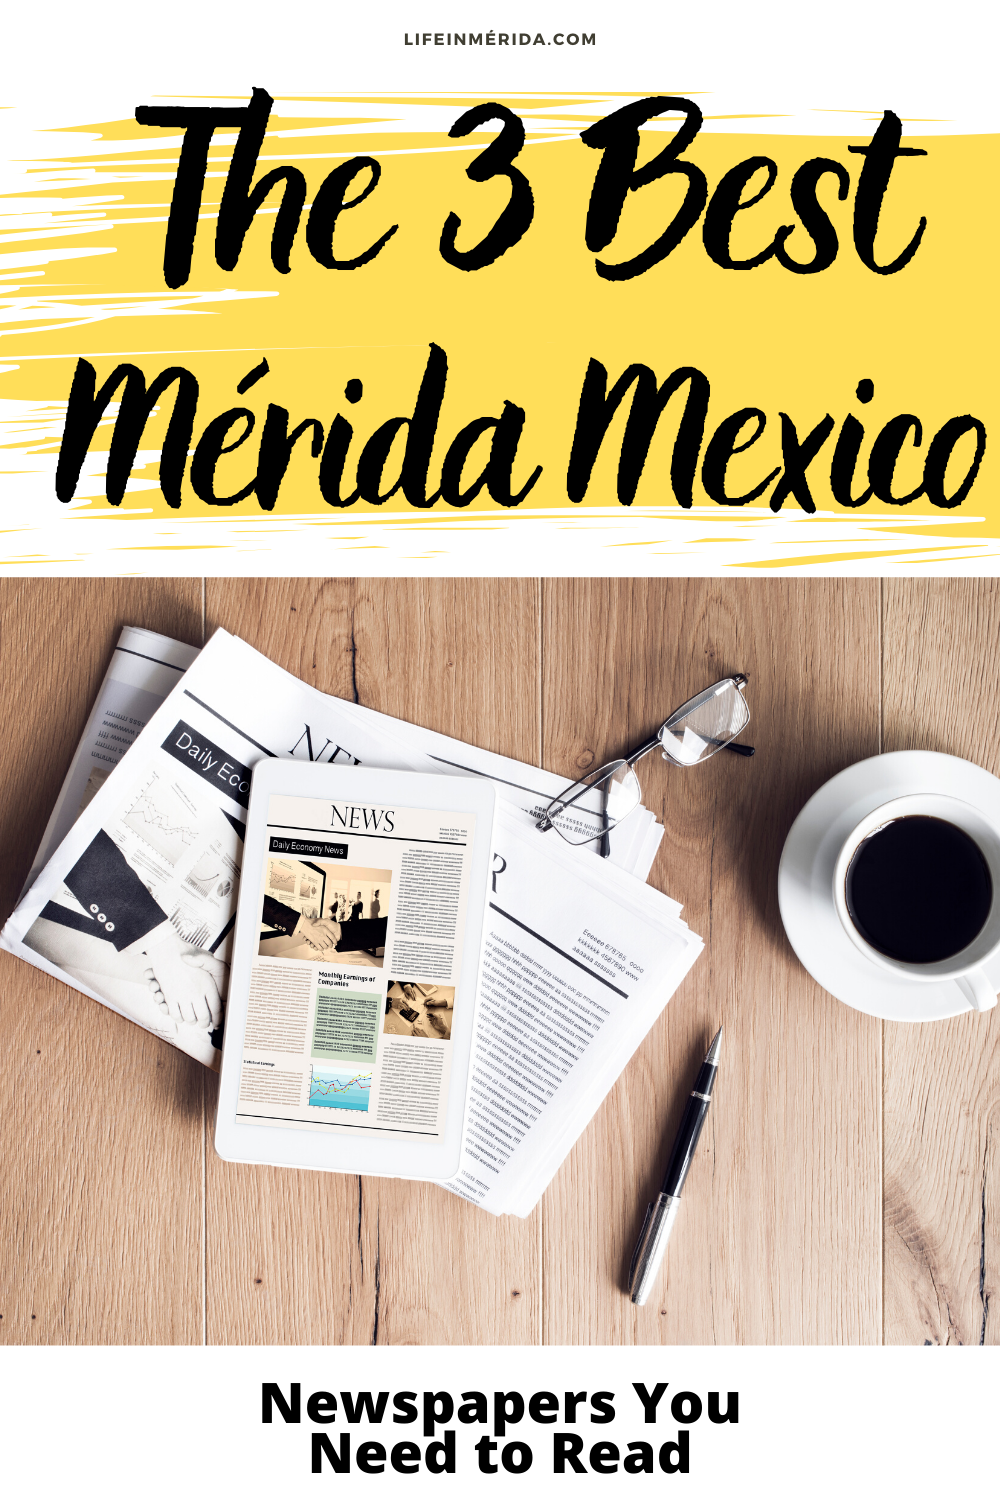 The 3 Best Mérida Mexico Newspapers You Need to Read